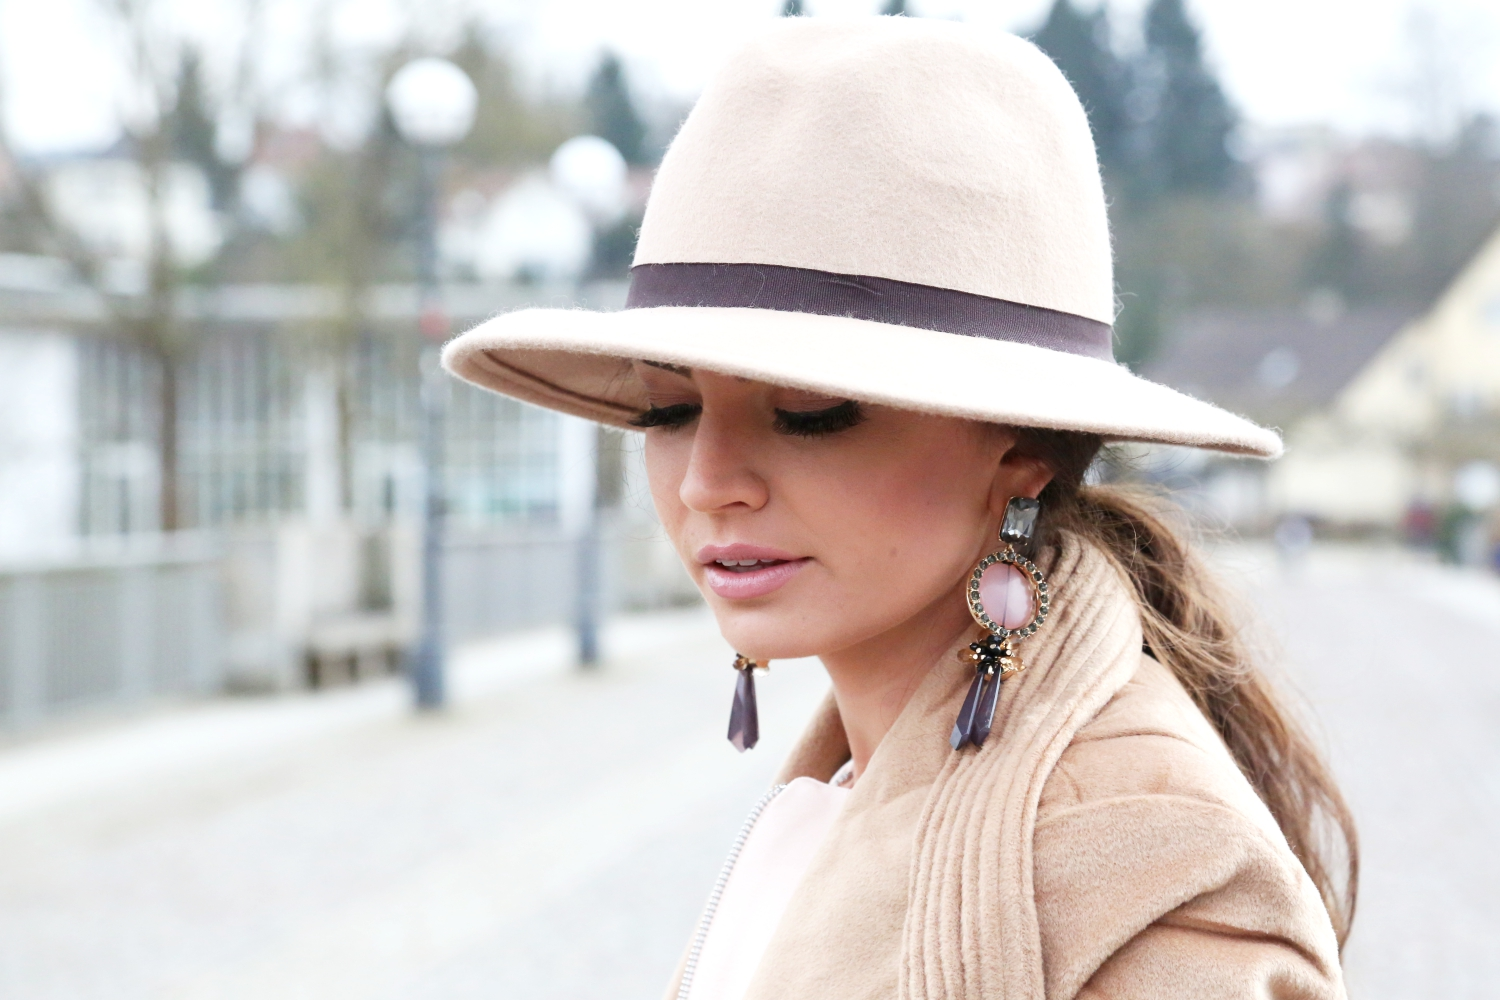 outfit-details-hat-camel-earrings-fashionhippieloves